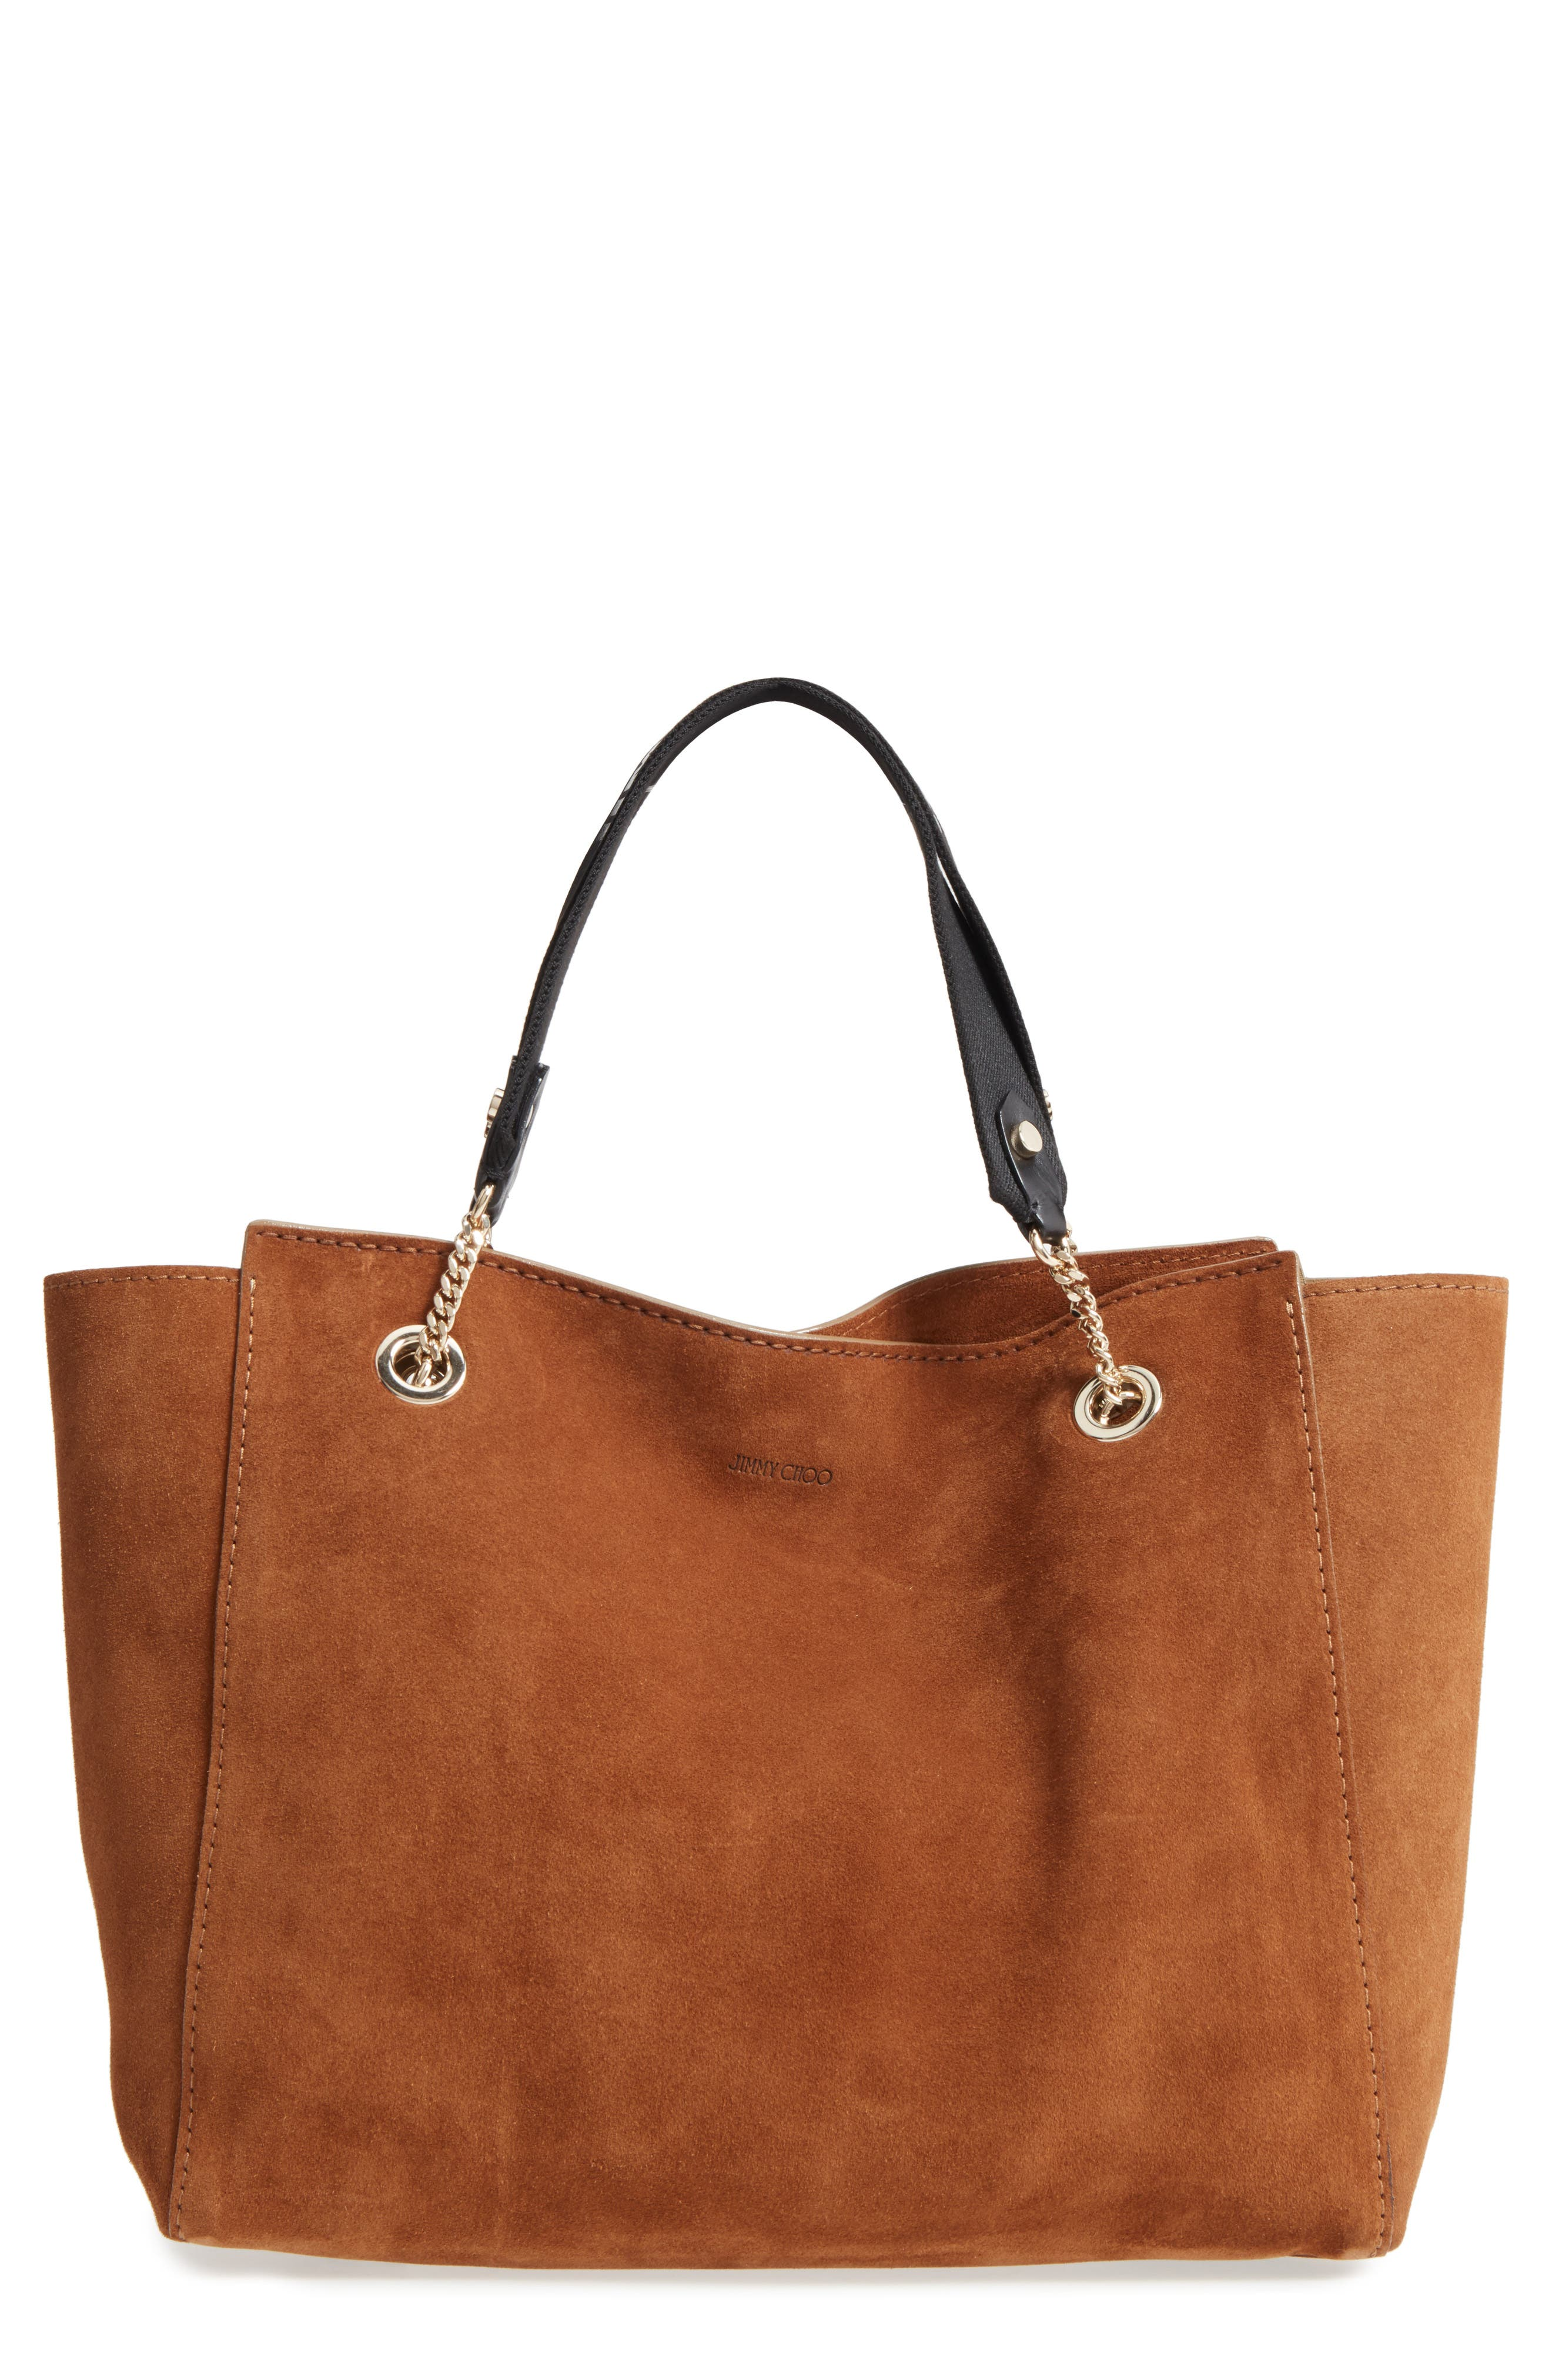 Flo Suede Tote,                             Main thumbnail 1, color,                             Cacao